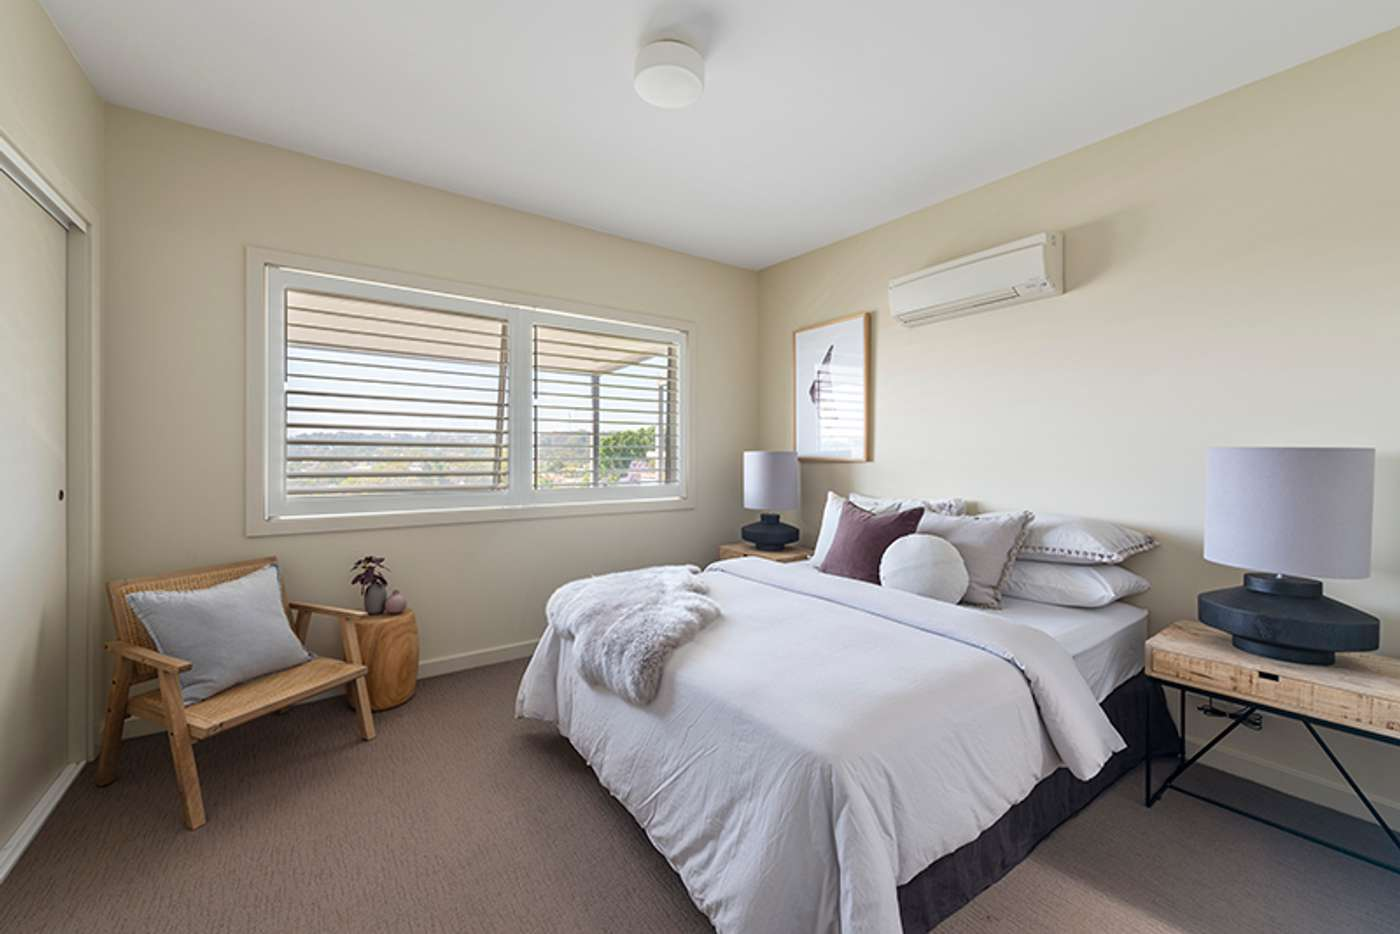 Sixth view of Homely townhouse listing, 196 Gosford Road, Adamstown NSW 2289